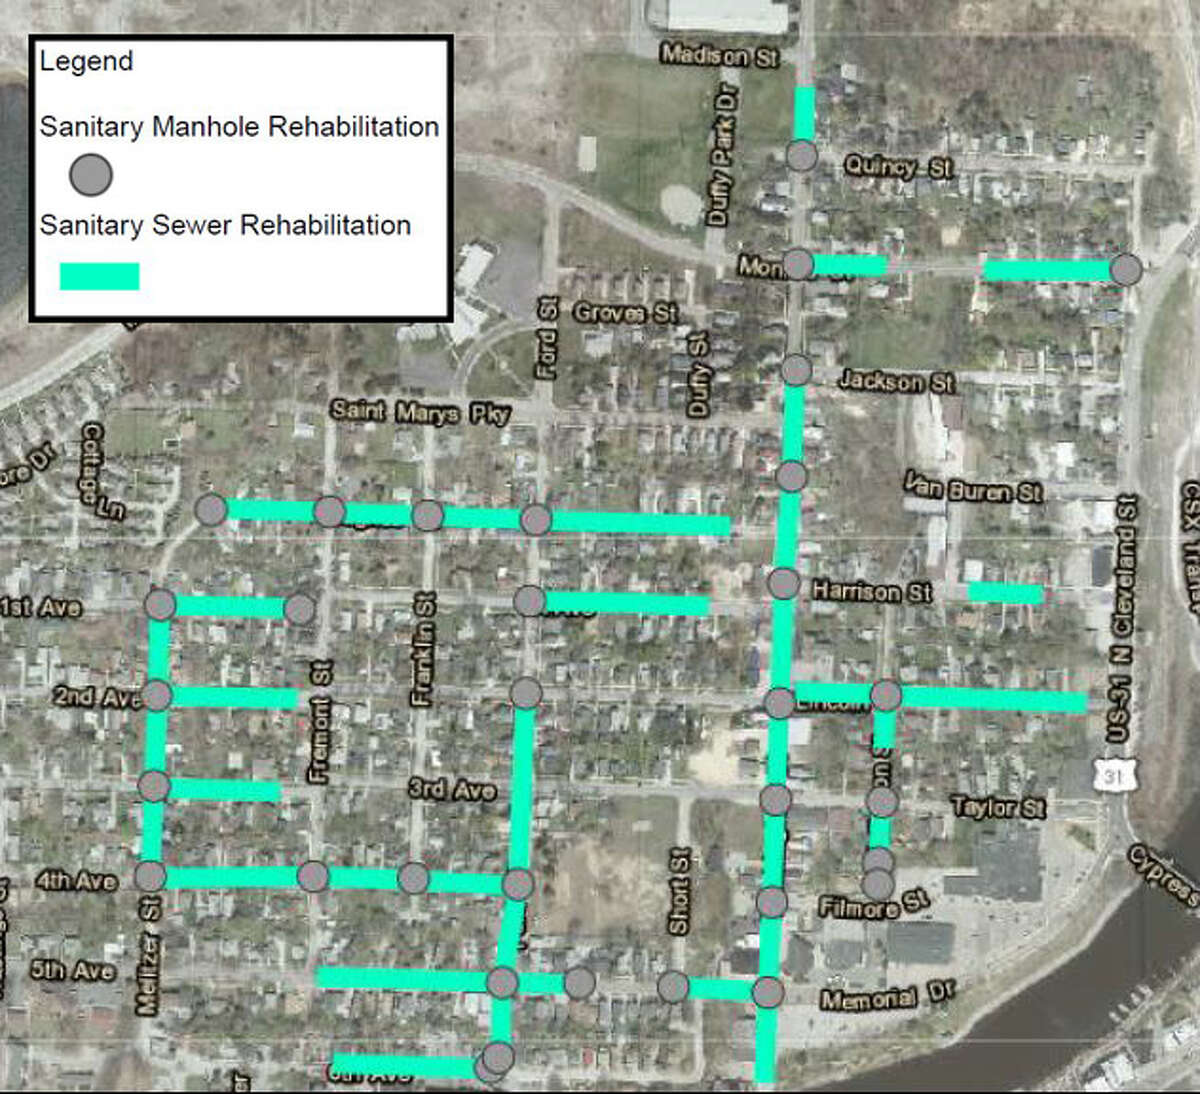 Wastewater collection rehabilitation project map for the north side of Manistee. (Courtesy Map)